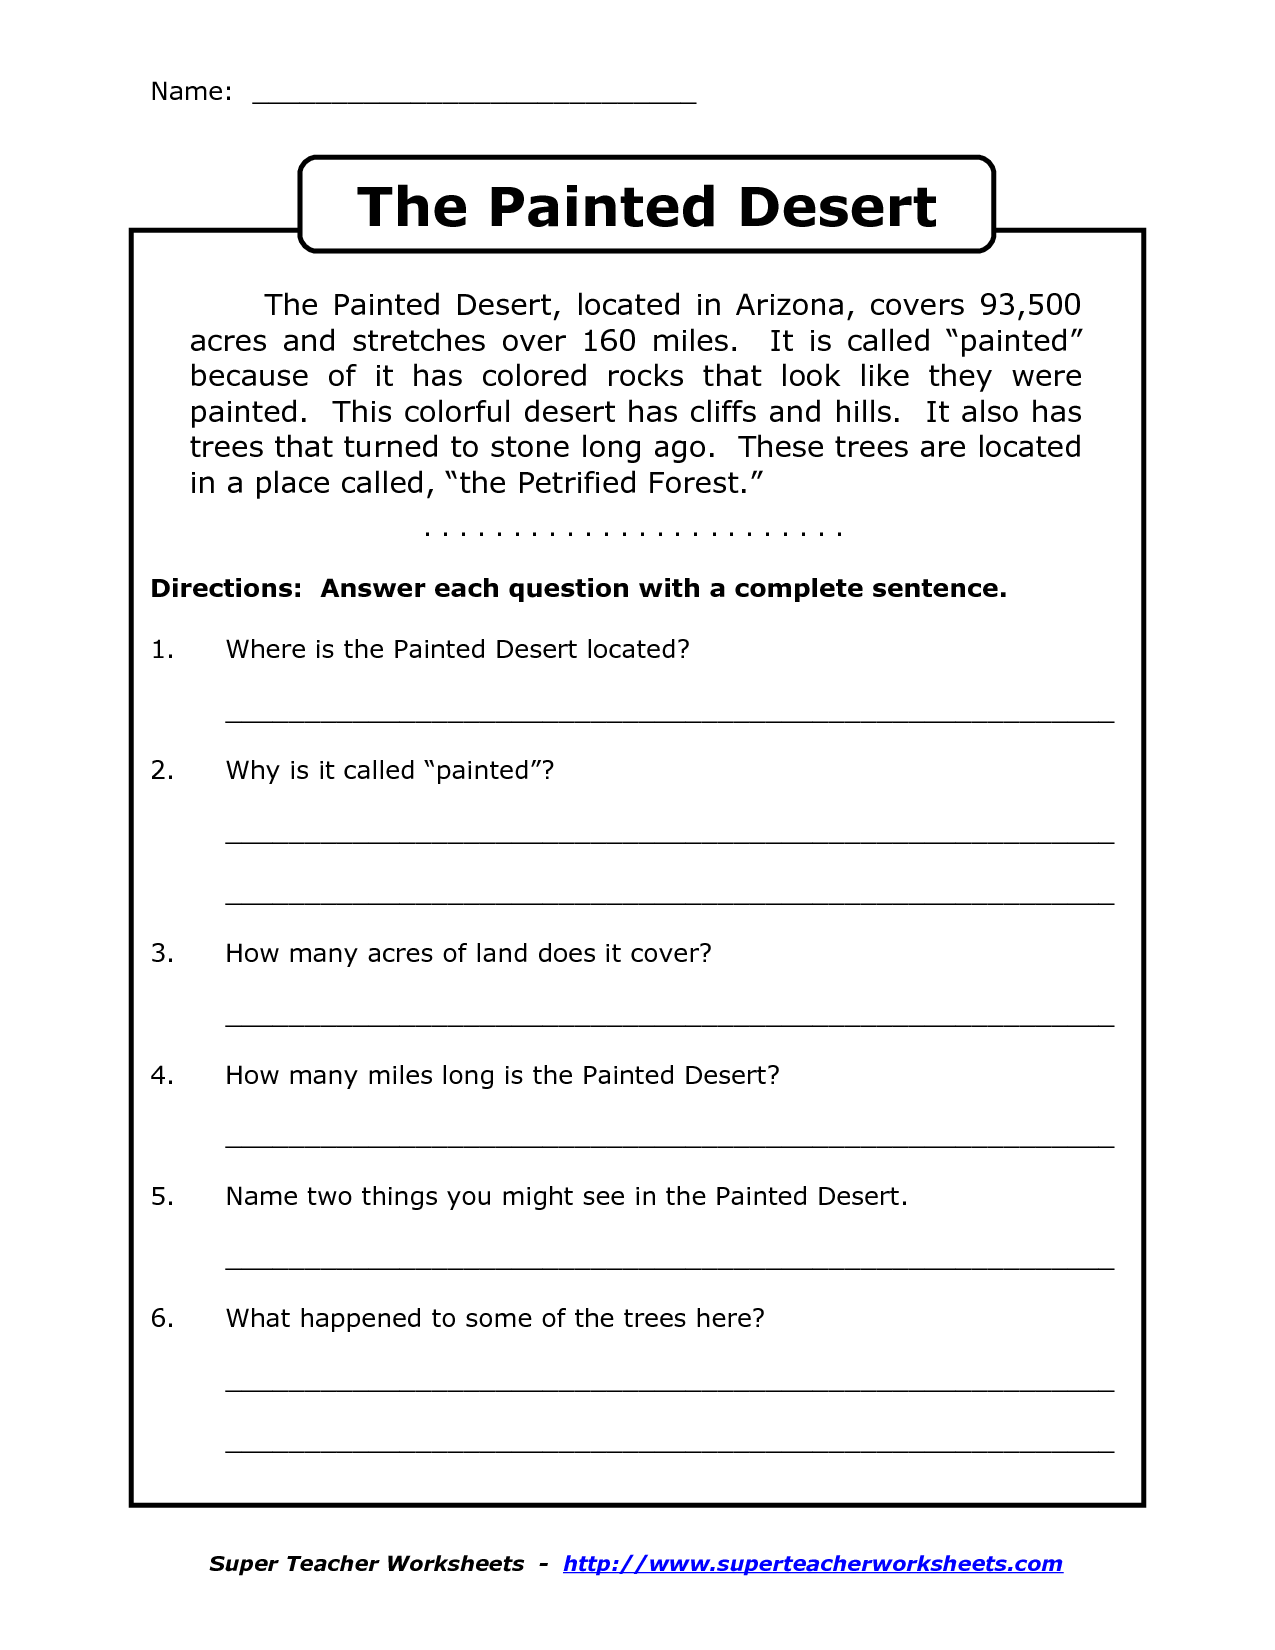 Worksheets Comprehension Passages For Grade 1 reading worksheets for 4th grade comprehension 3 name the painted desert